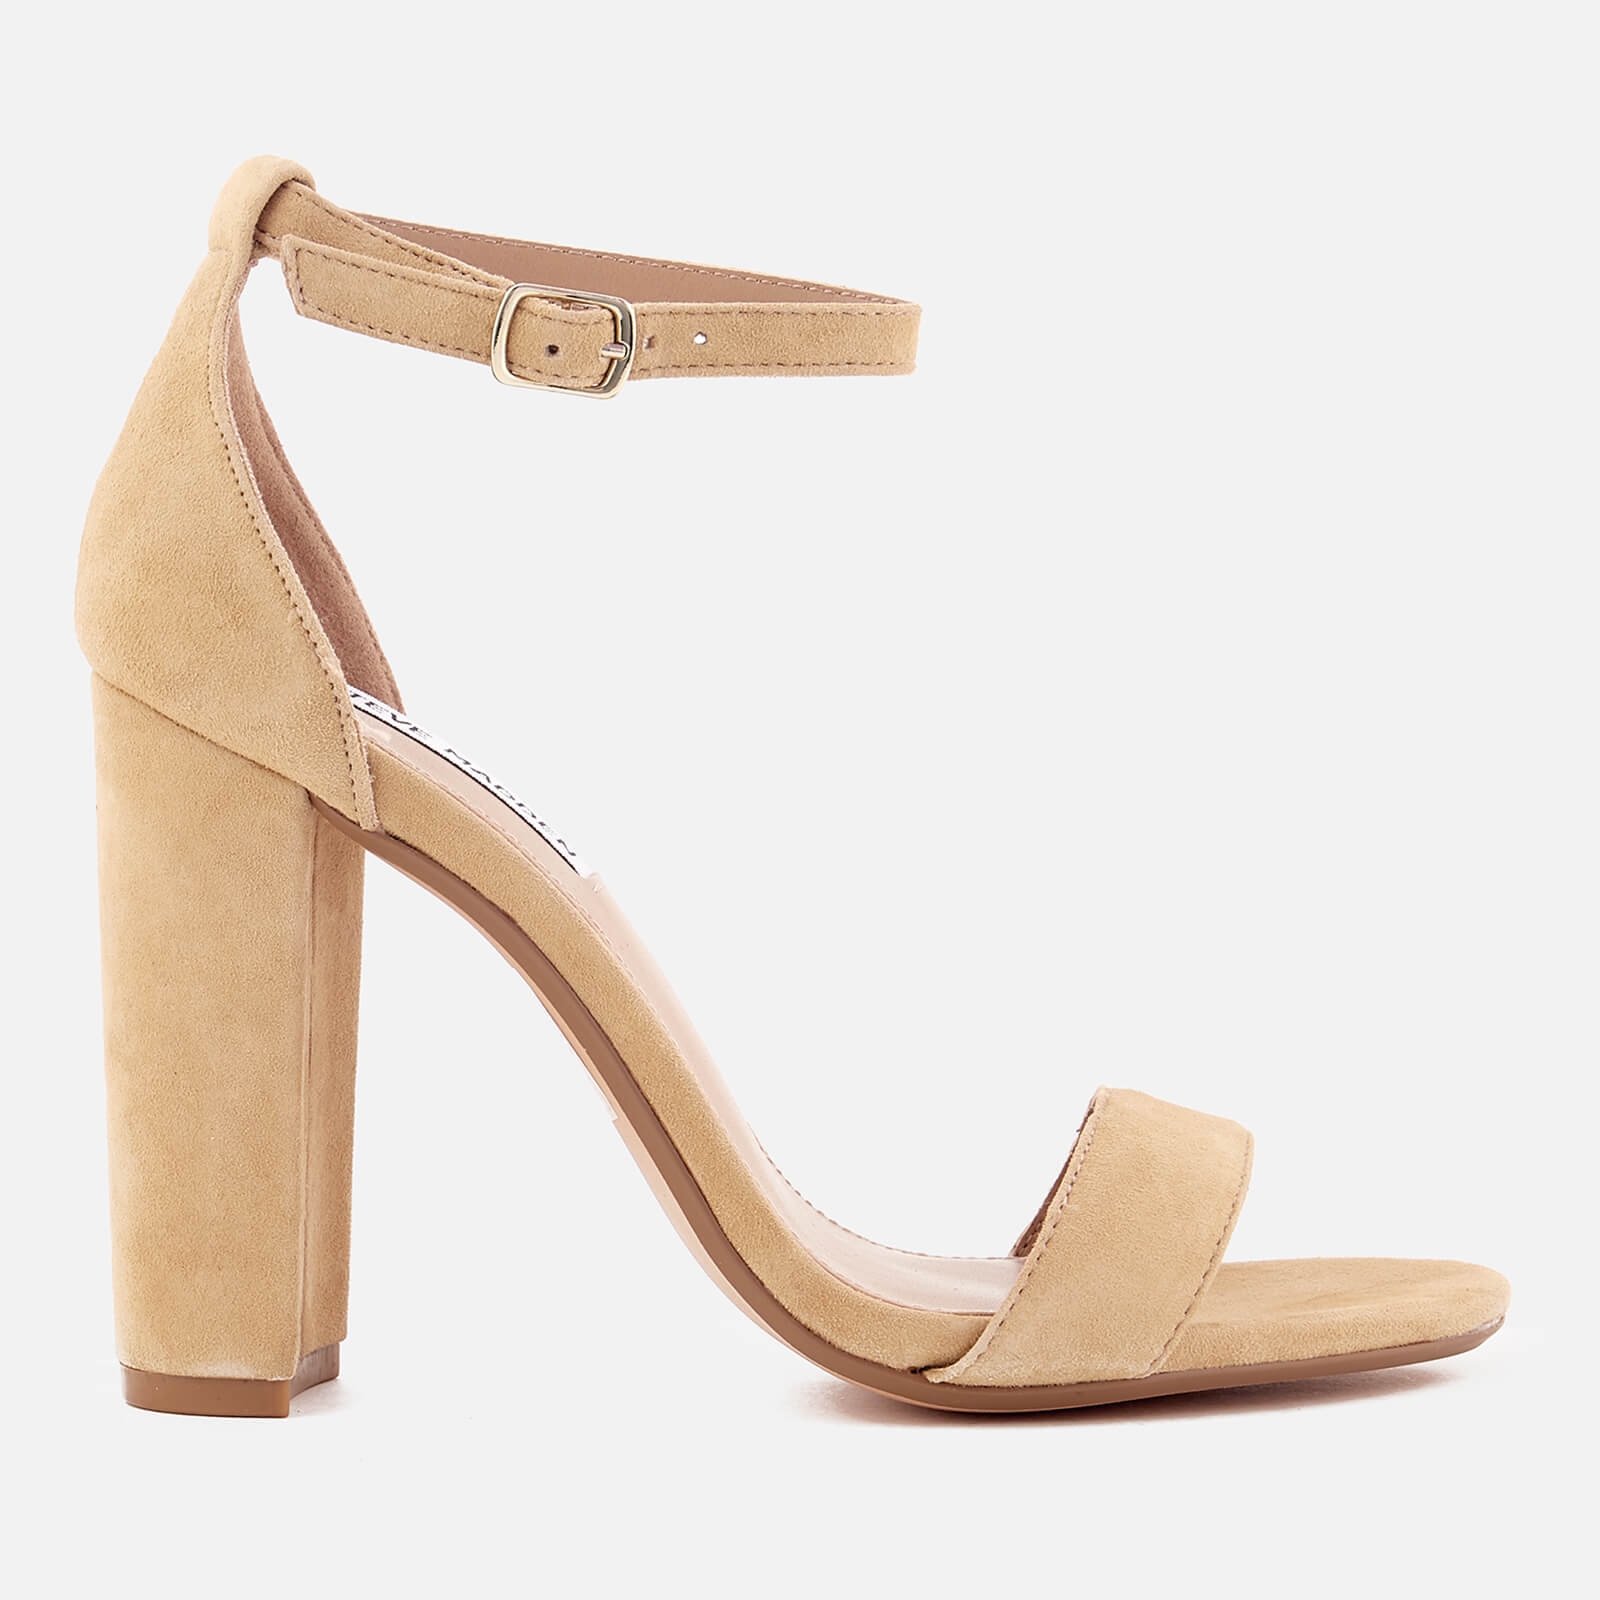 76f8f4742702d Steve Madden Women s Carrson Suede Barely There Heeled Sandals ...